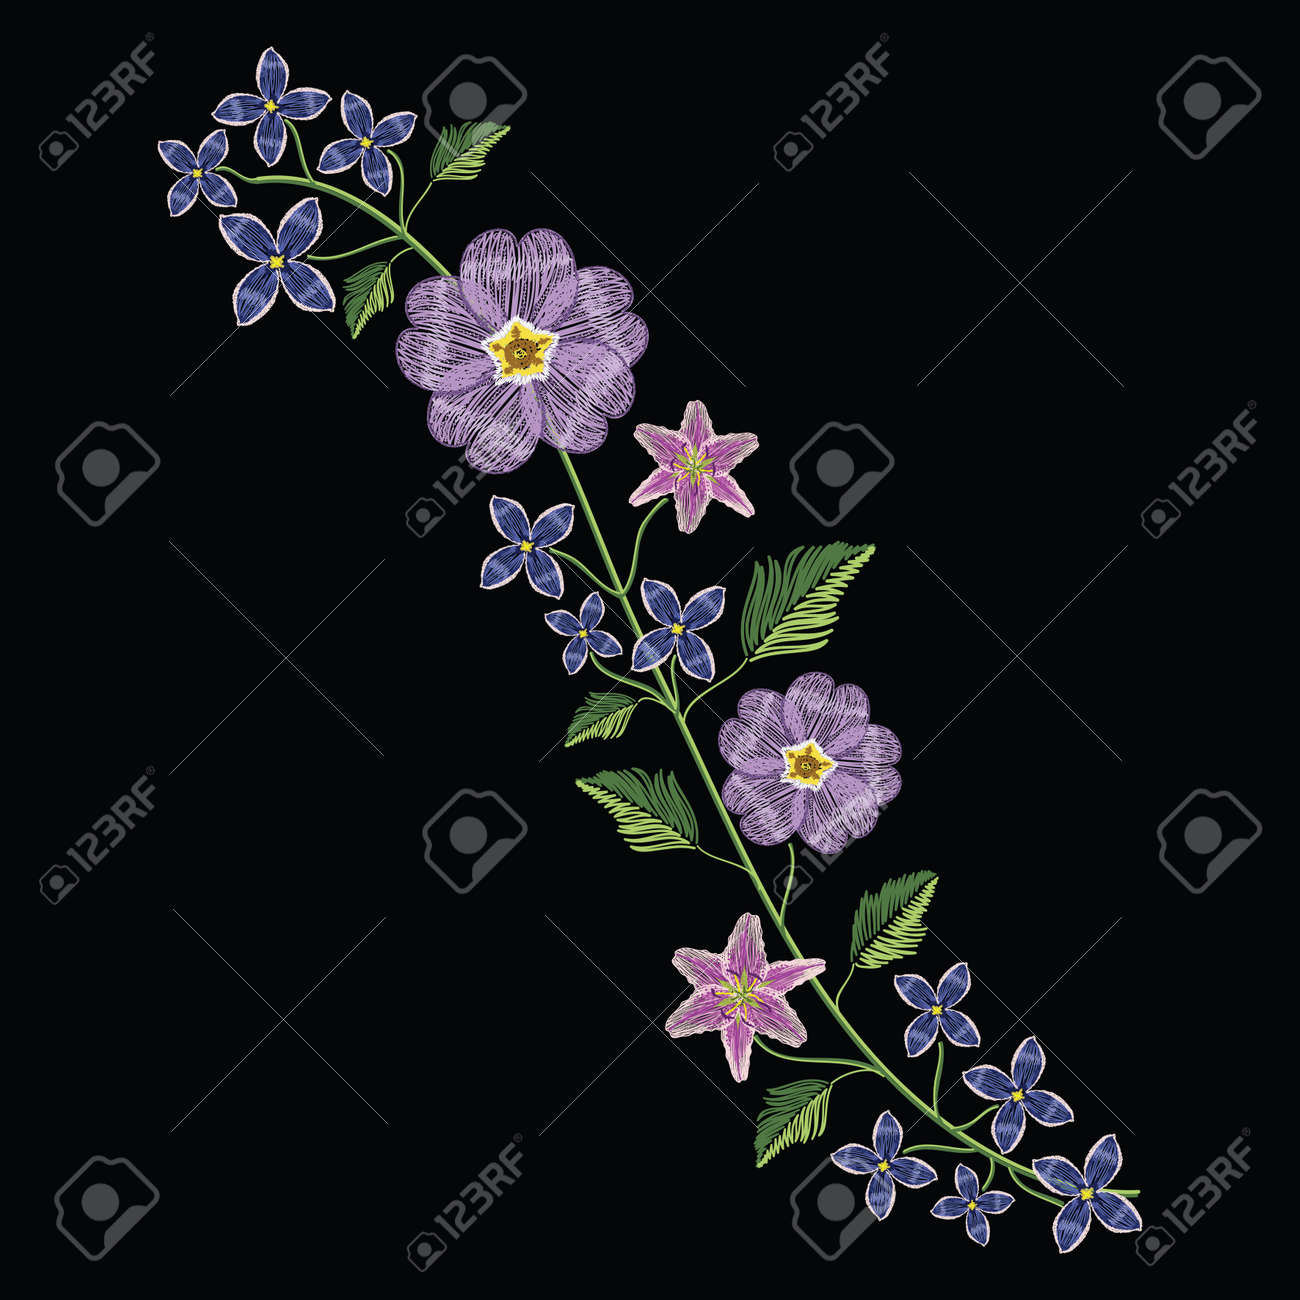 Embroidery stitches with primarose primula vulgaris and lilac flower.. Vector fashion ornament on black background for traditional floral decoration. Pattern for textile and fabrics. Print for textile. - 82742432